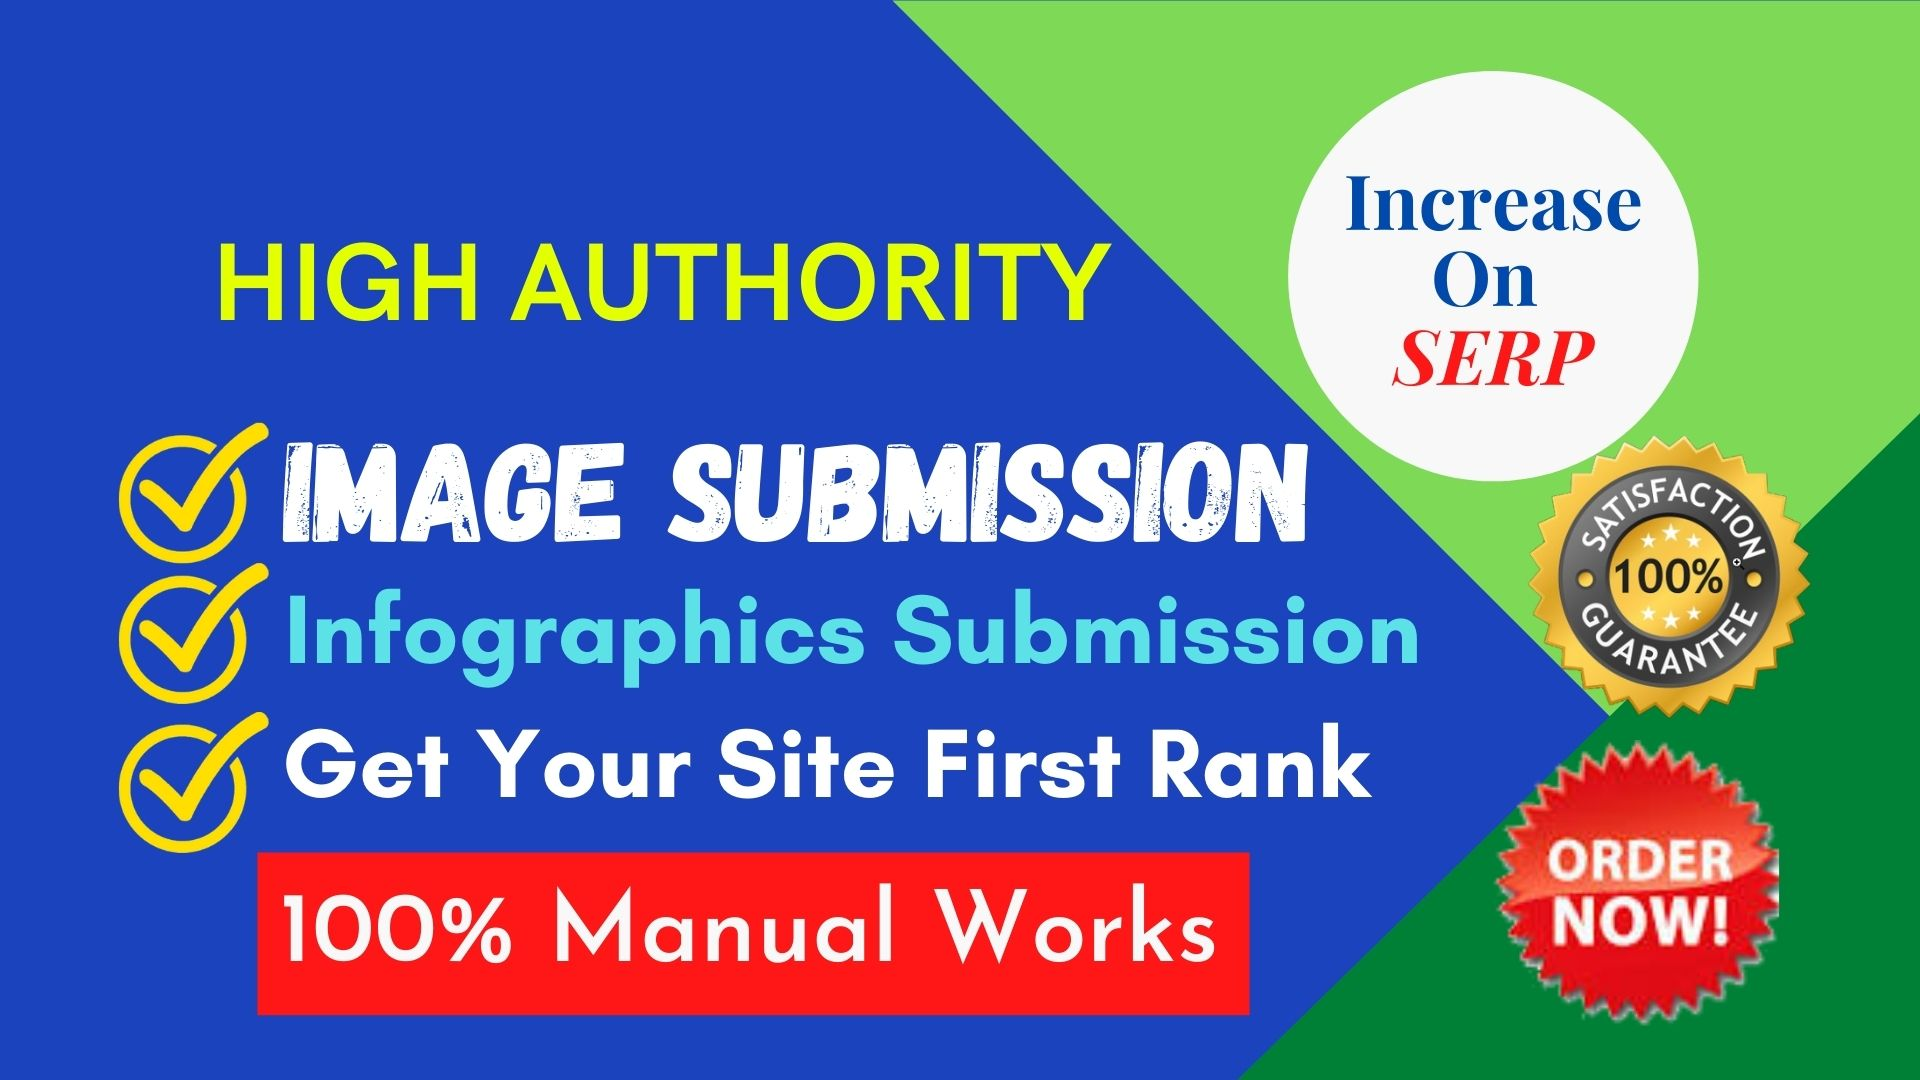 I will work on infographics or image submission for backlinks